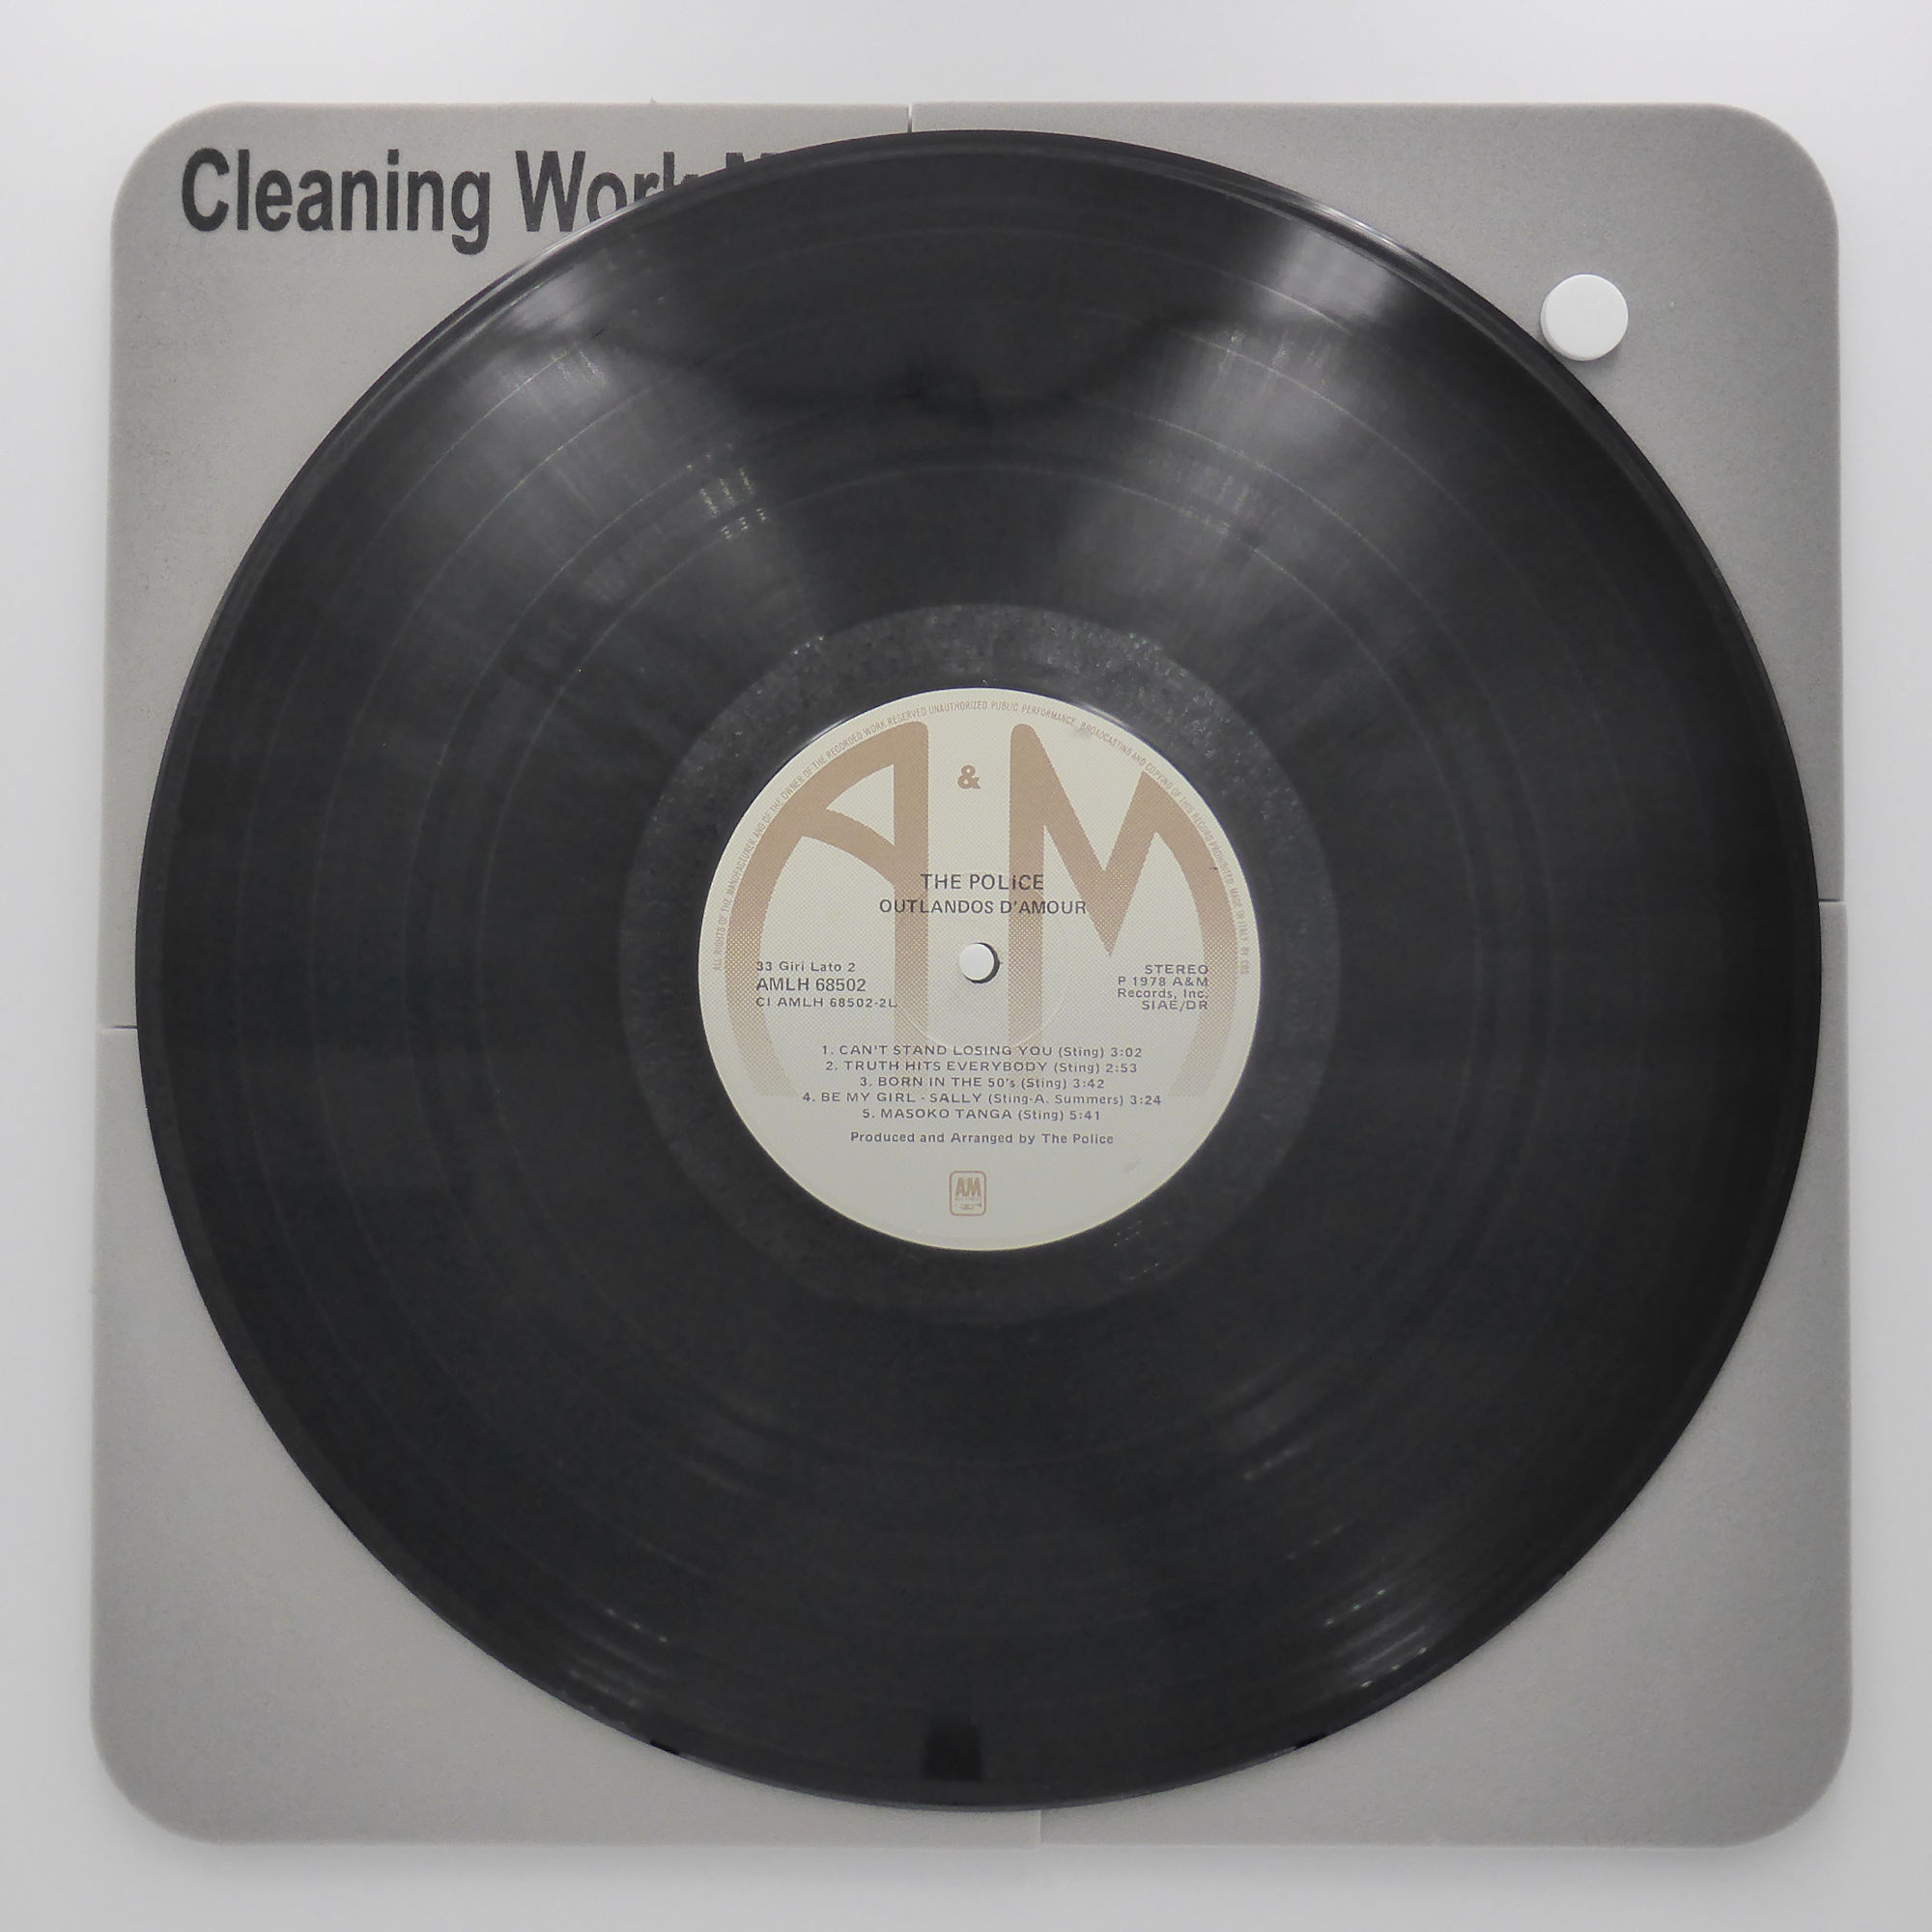 Analogue Studio Professional Vinyl Record Cleaning Work